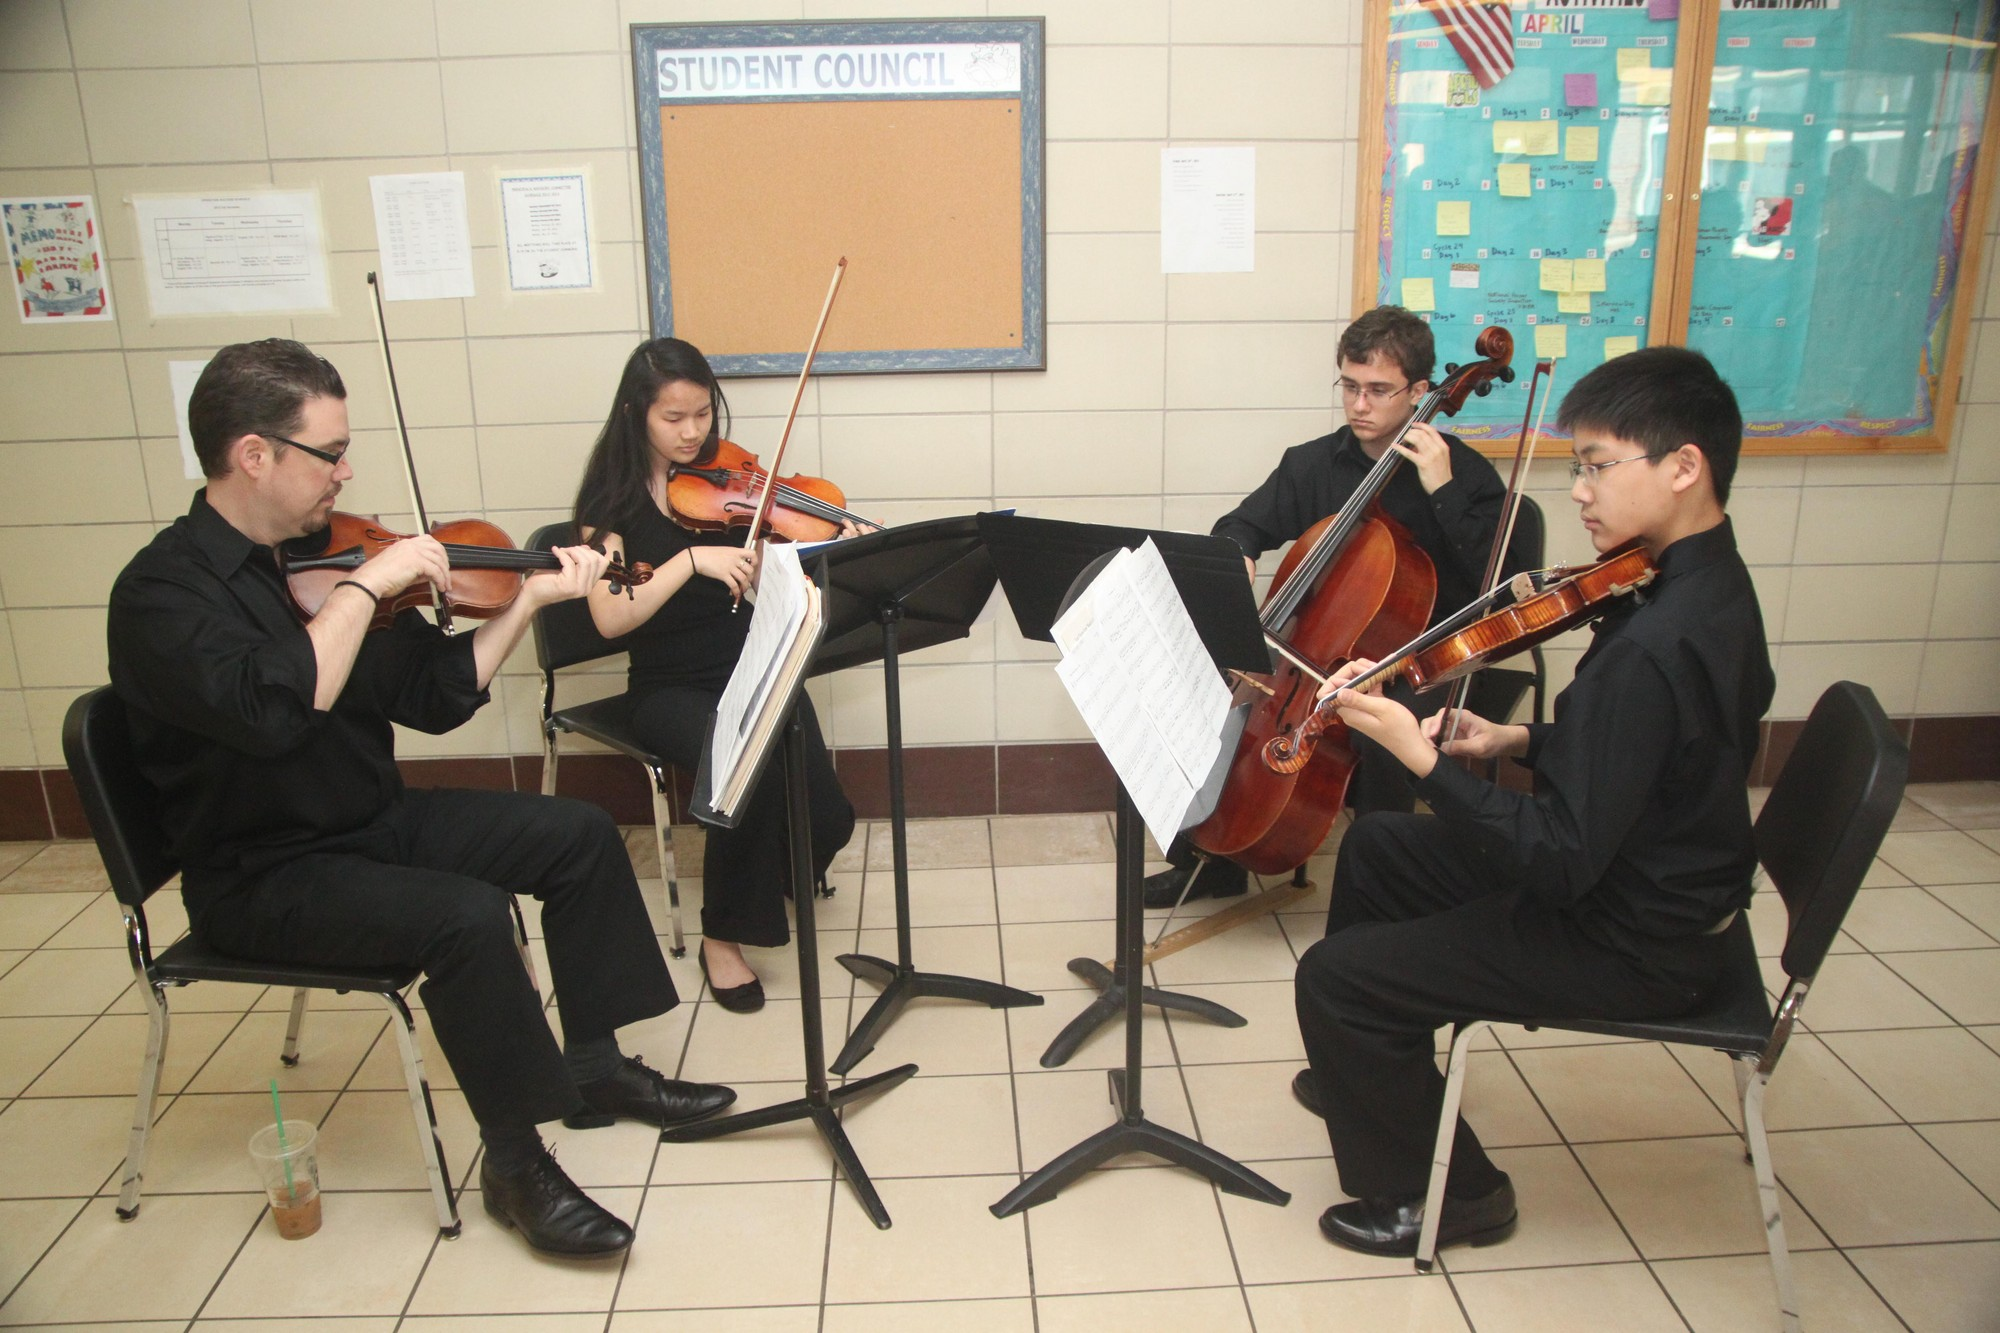 The Hewlett High School Chamber Orchestra performed while the guests and honorees arrived.